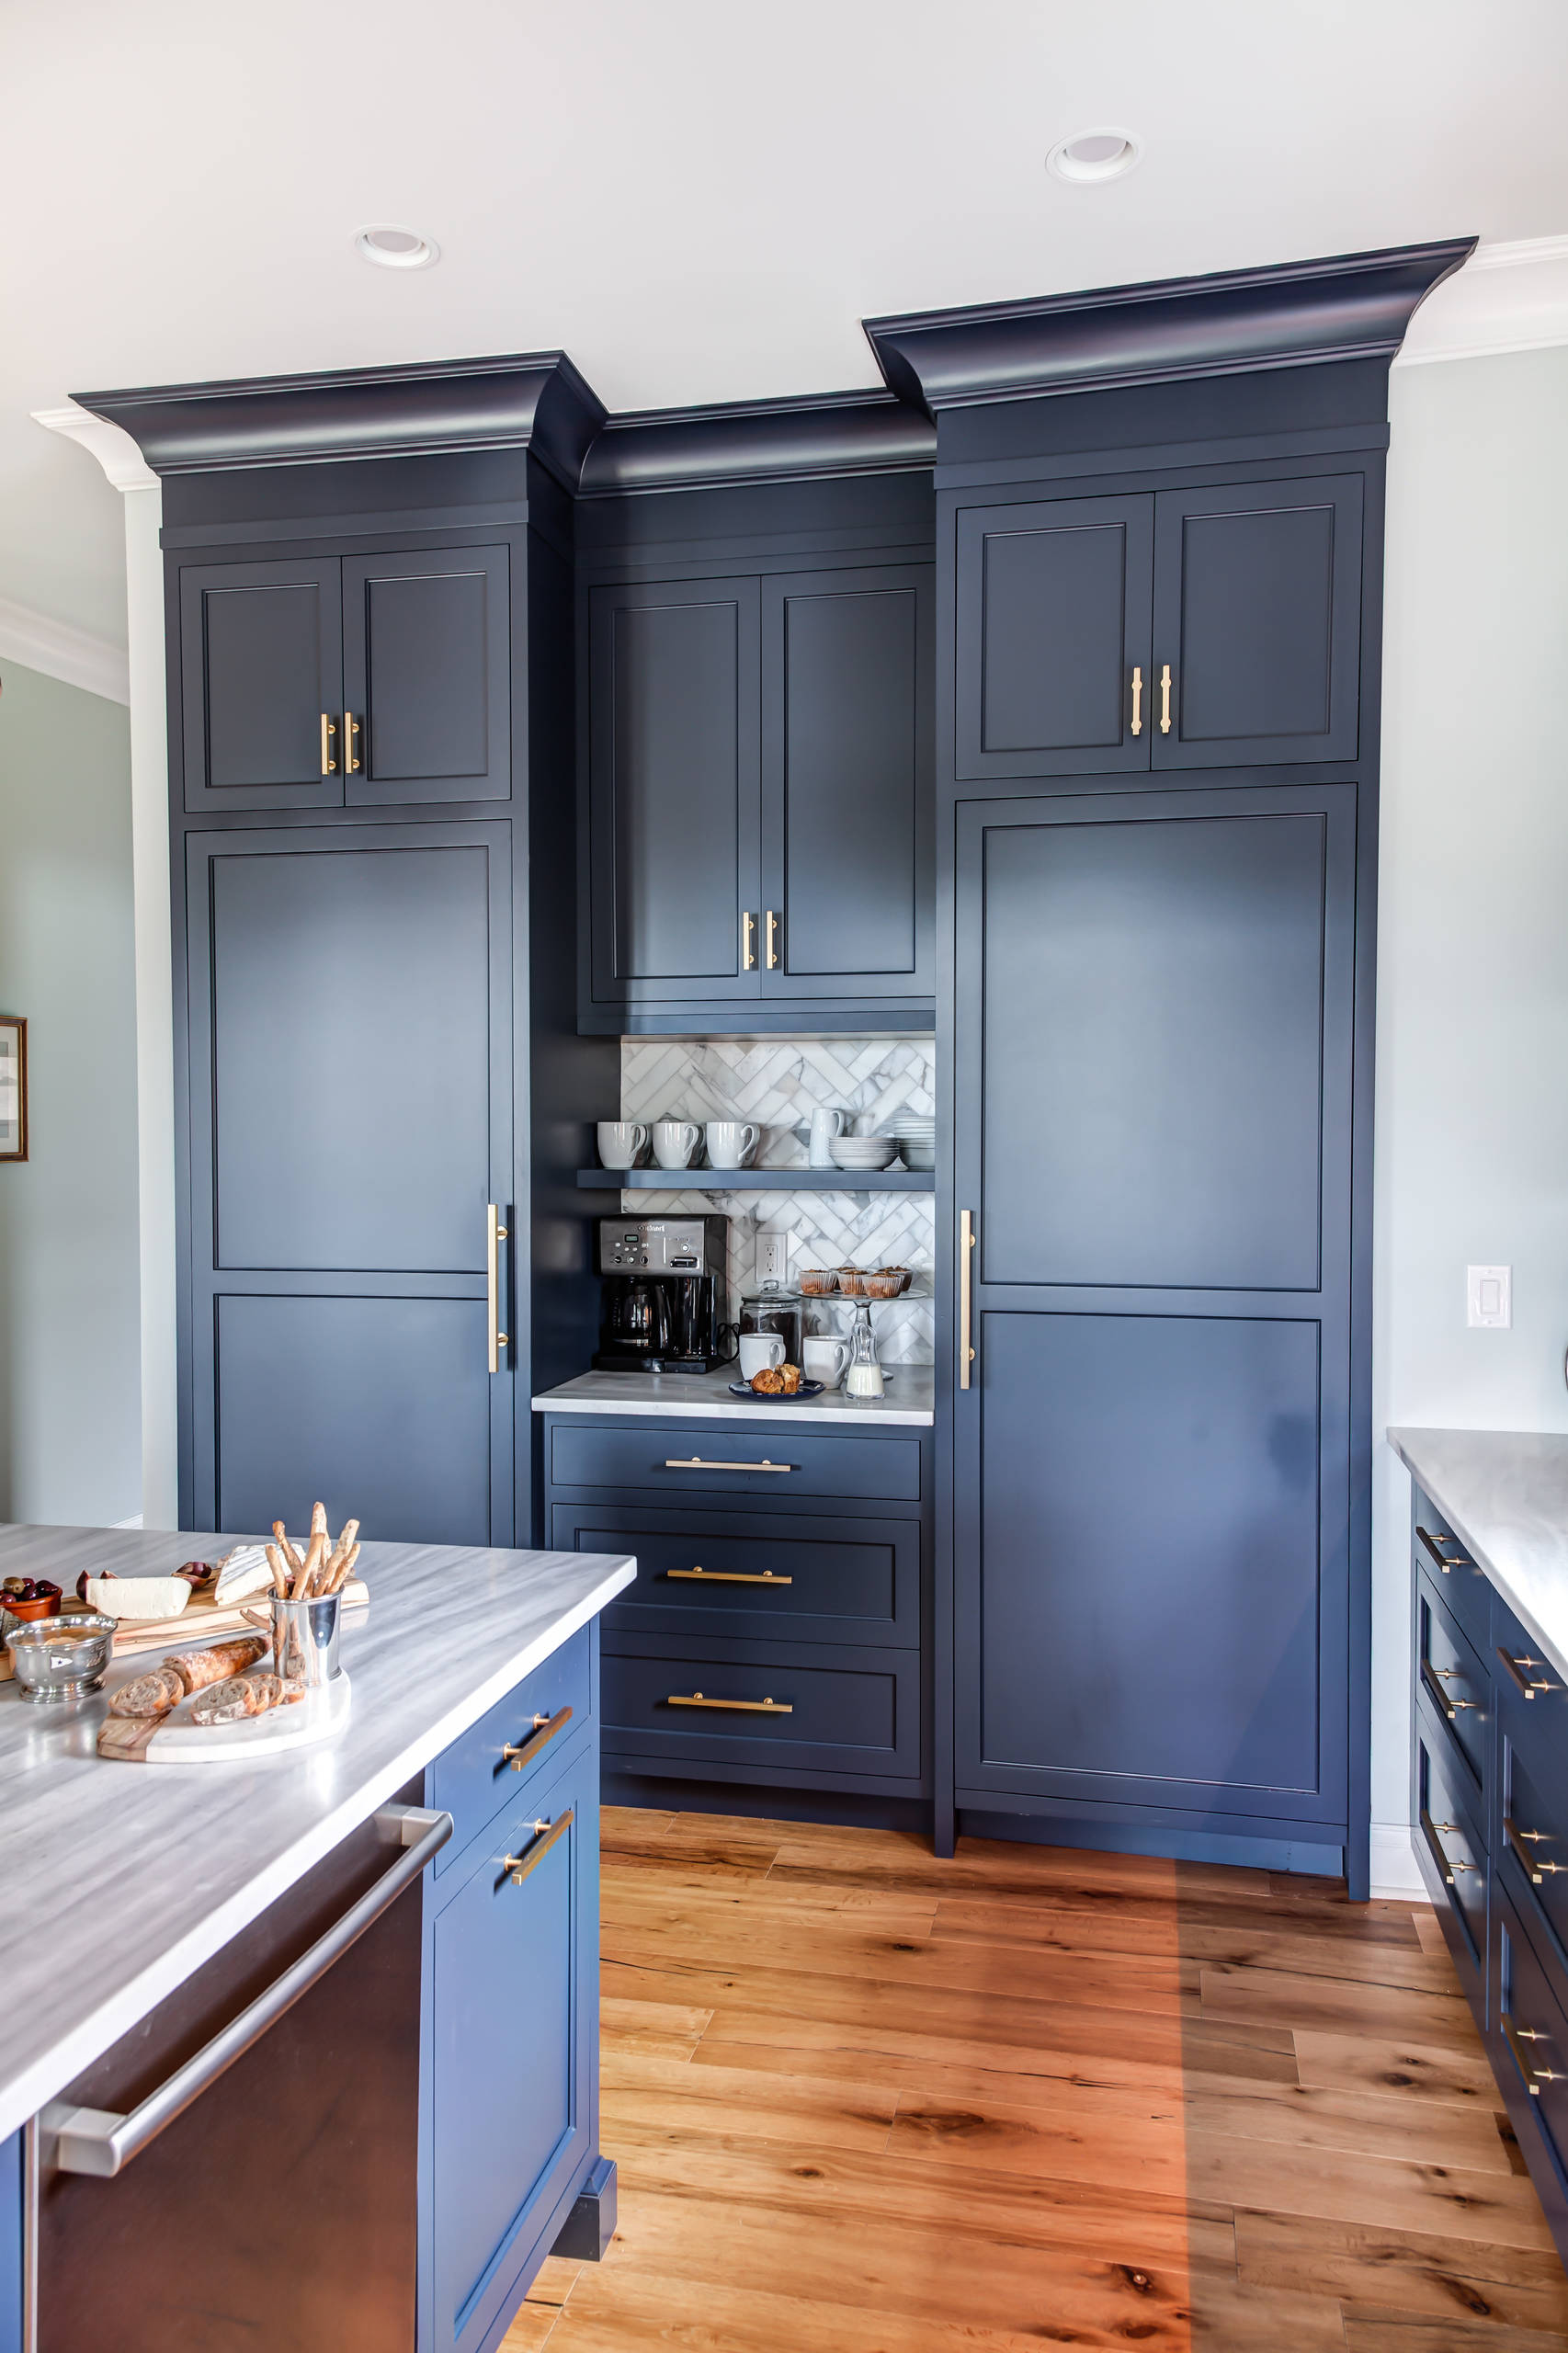 75 Beautiful Blue L Shaped Kitchen Pictures Ideas January 2021 Houzz